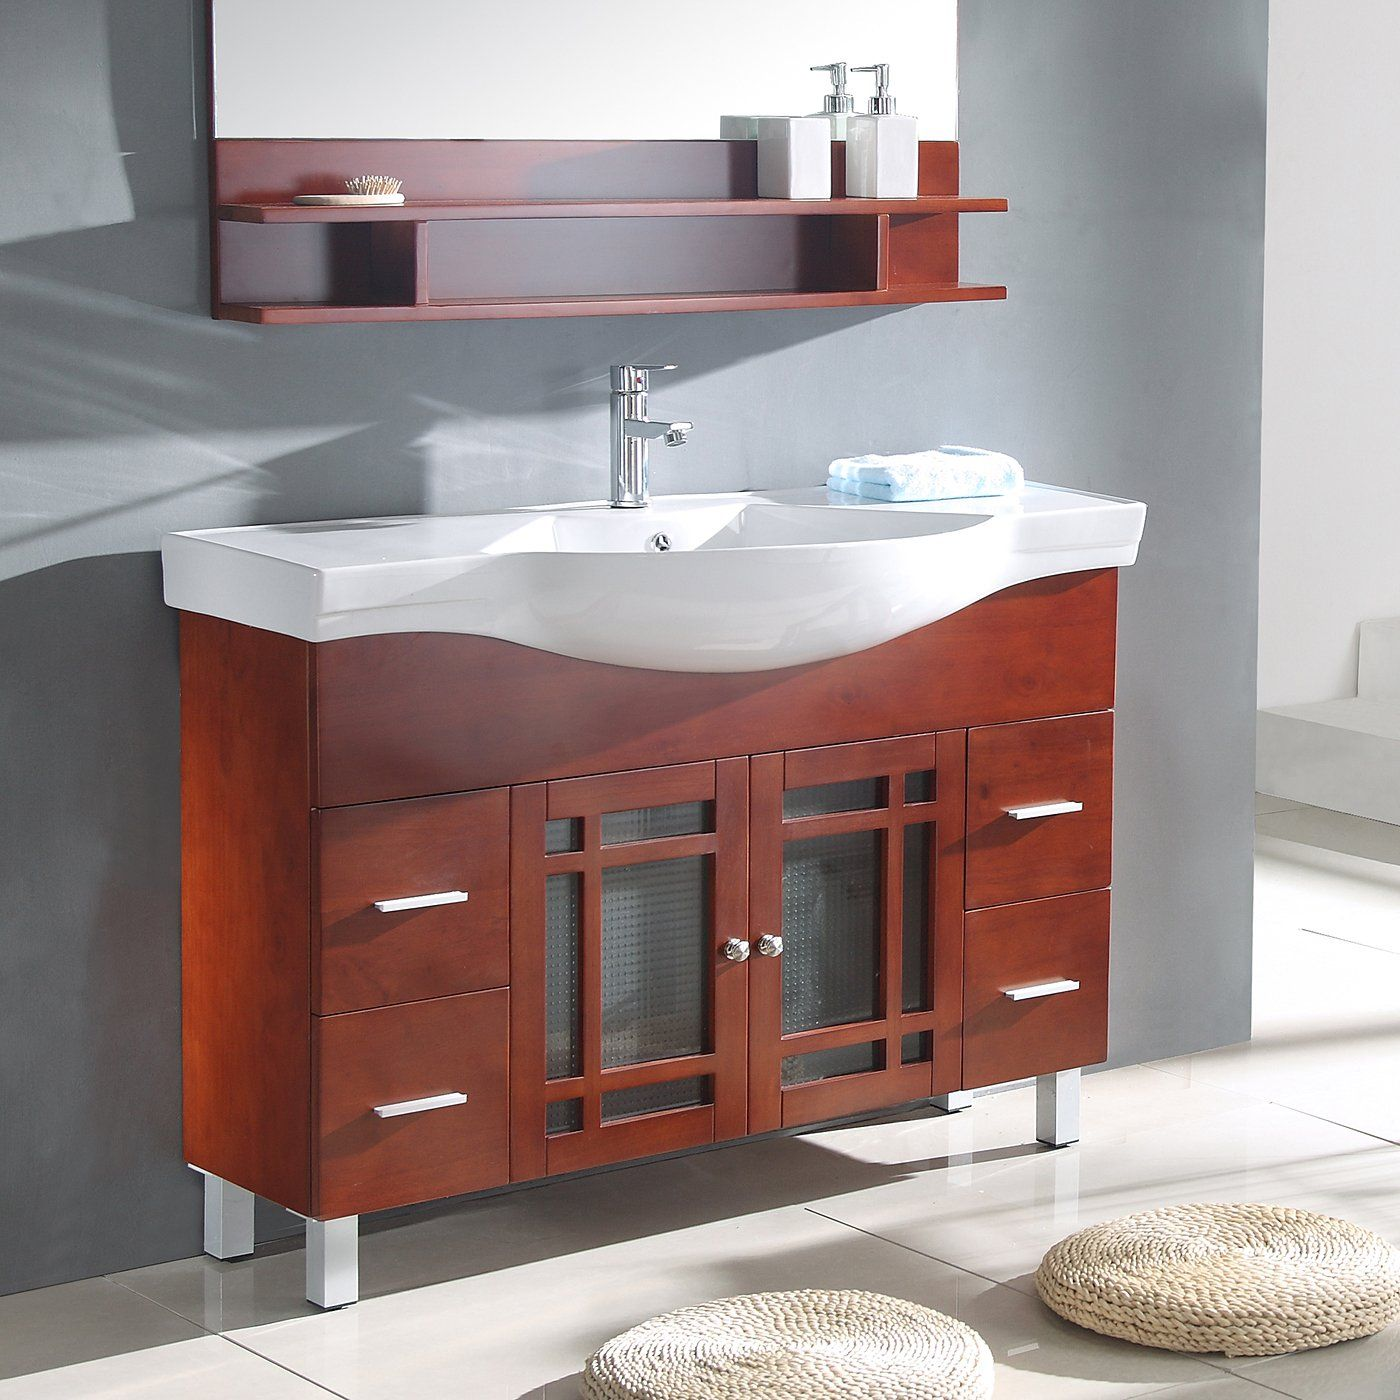 Narrow Depth Bathroom Vanities Home Design Ideas Vanity Gallery For Narrow Depth Bathroom V Narrow Bathroom Vanities Narrow Bathroom Bathroom Vanities For Sale